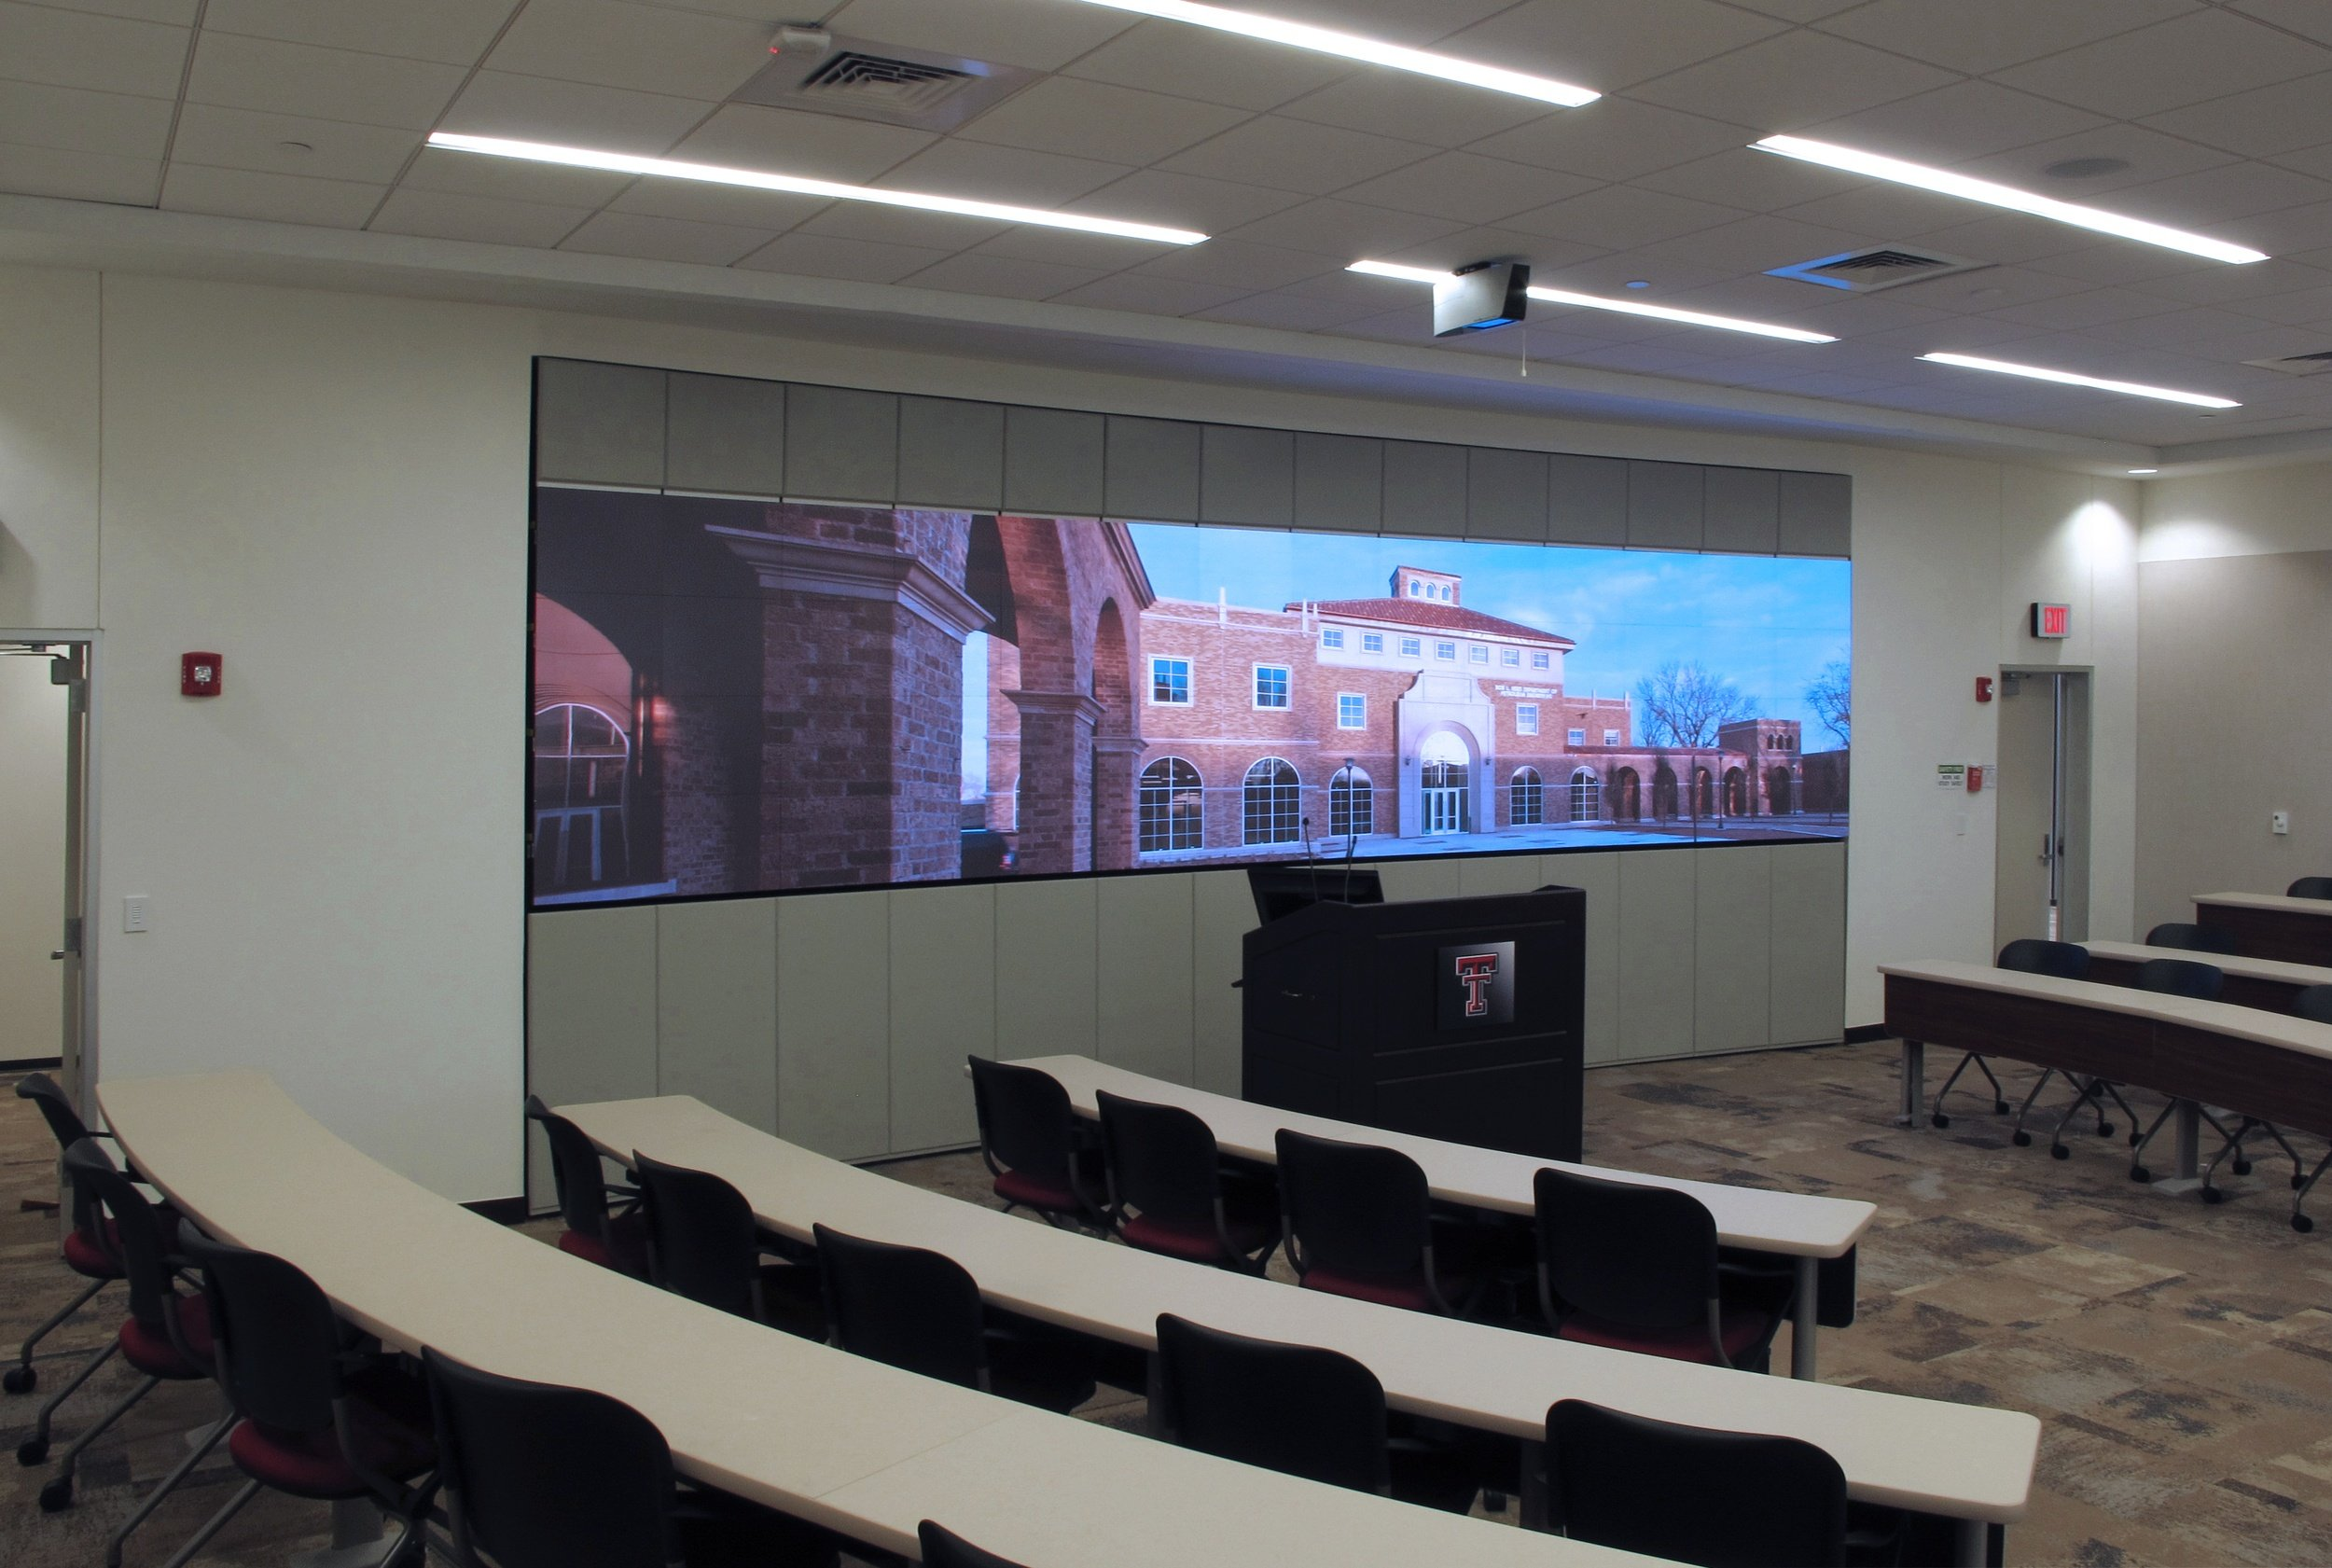 """Texas Tech's """"Smart"""" Learning Auditorium Enlightened with Prysm Video Walls"""